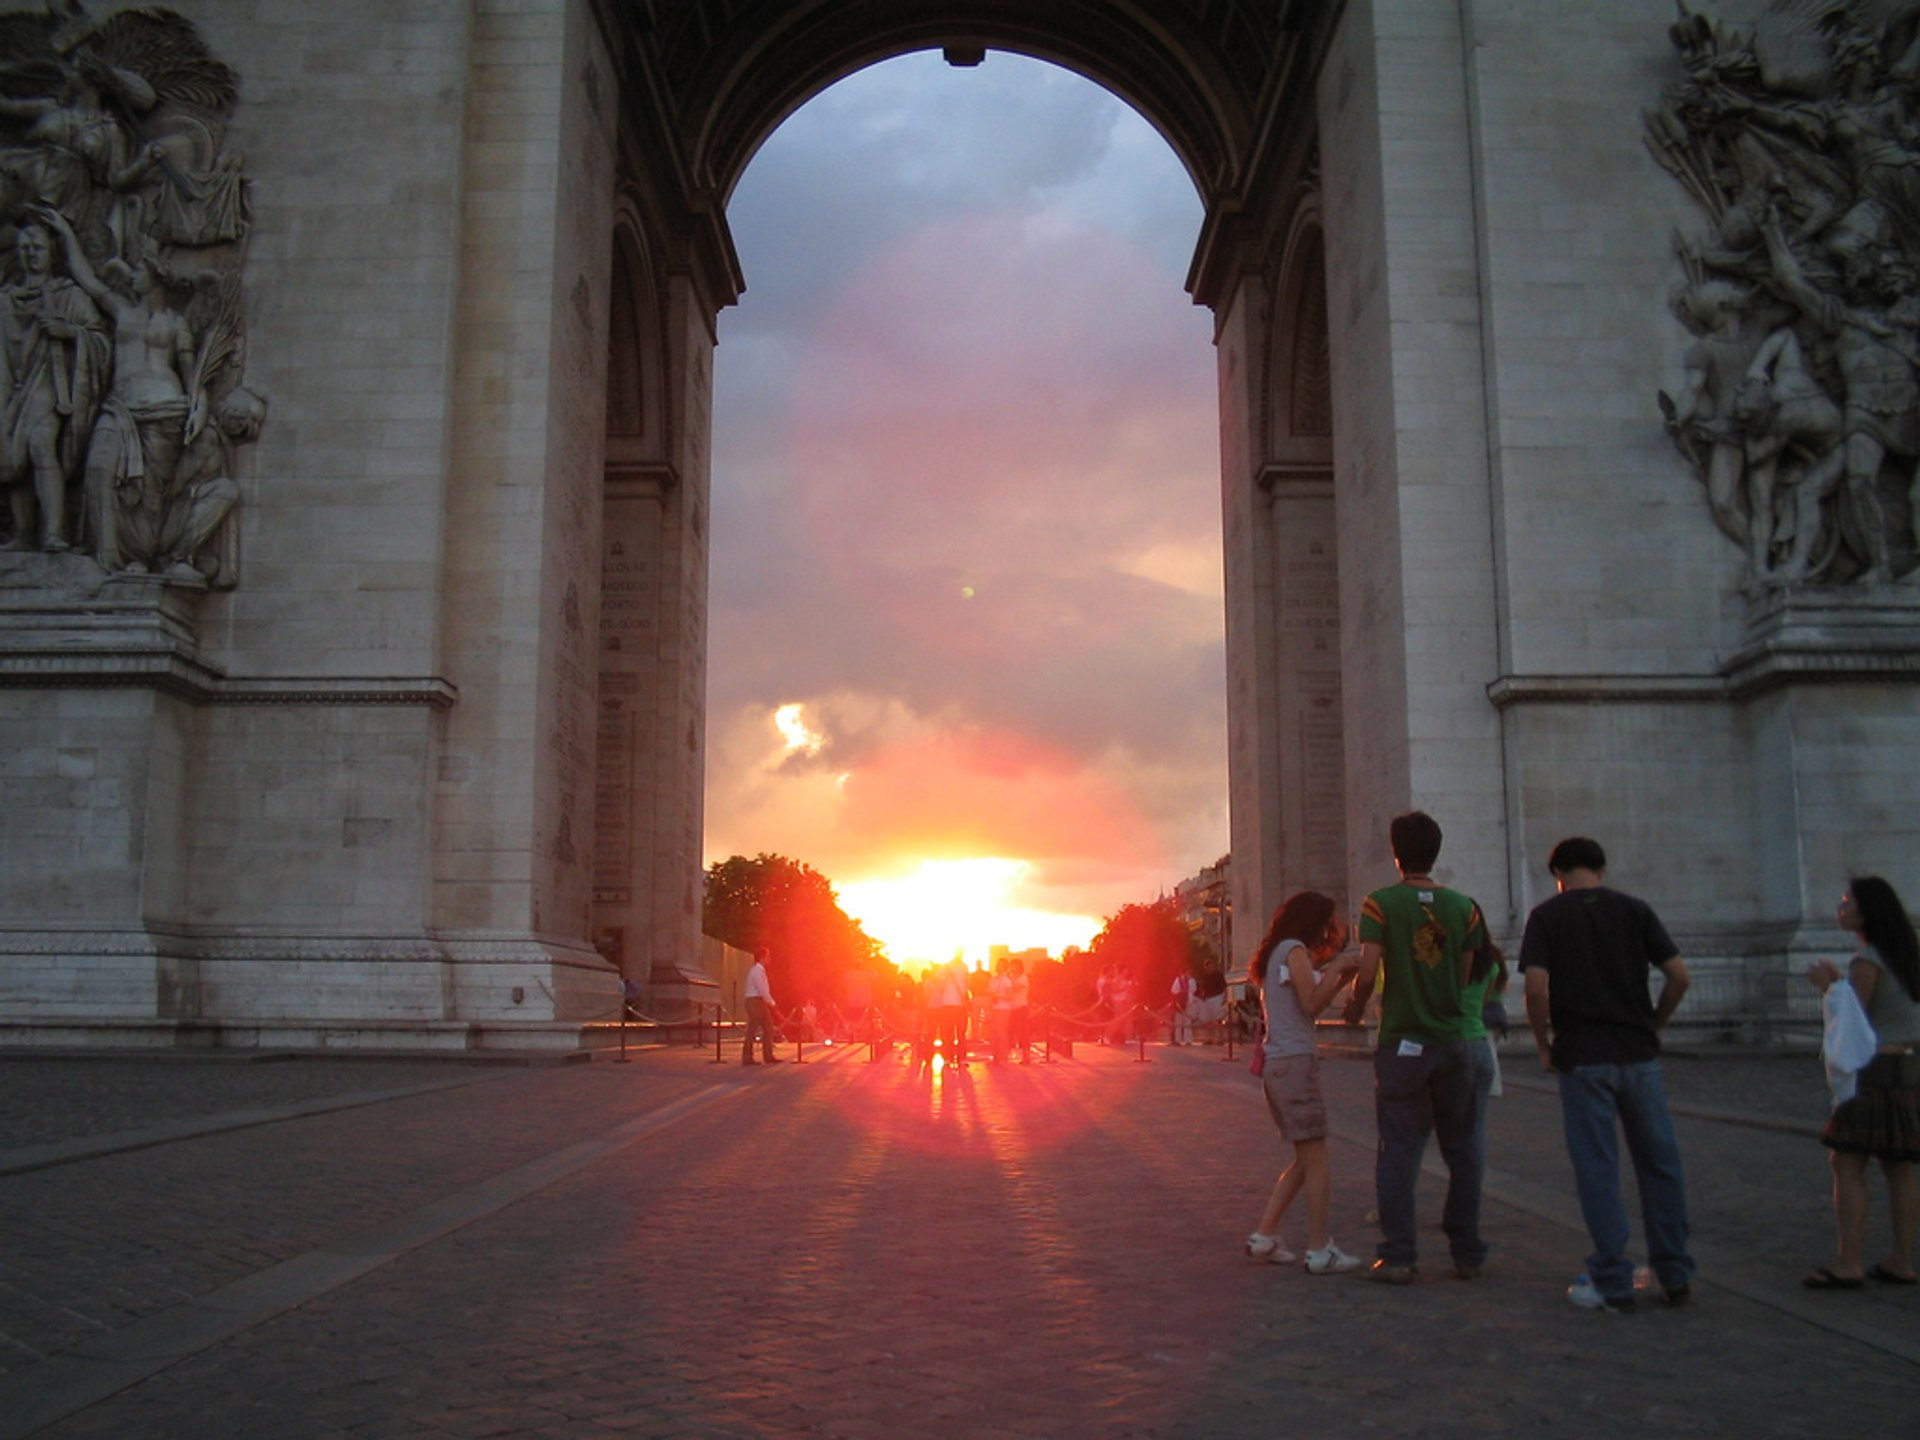 Sunset in the Arc de Triomphe in Paris 2020 - Best Time